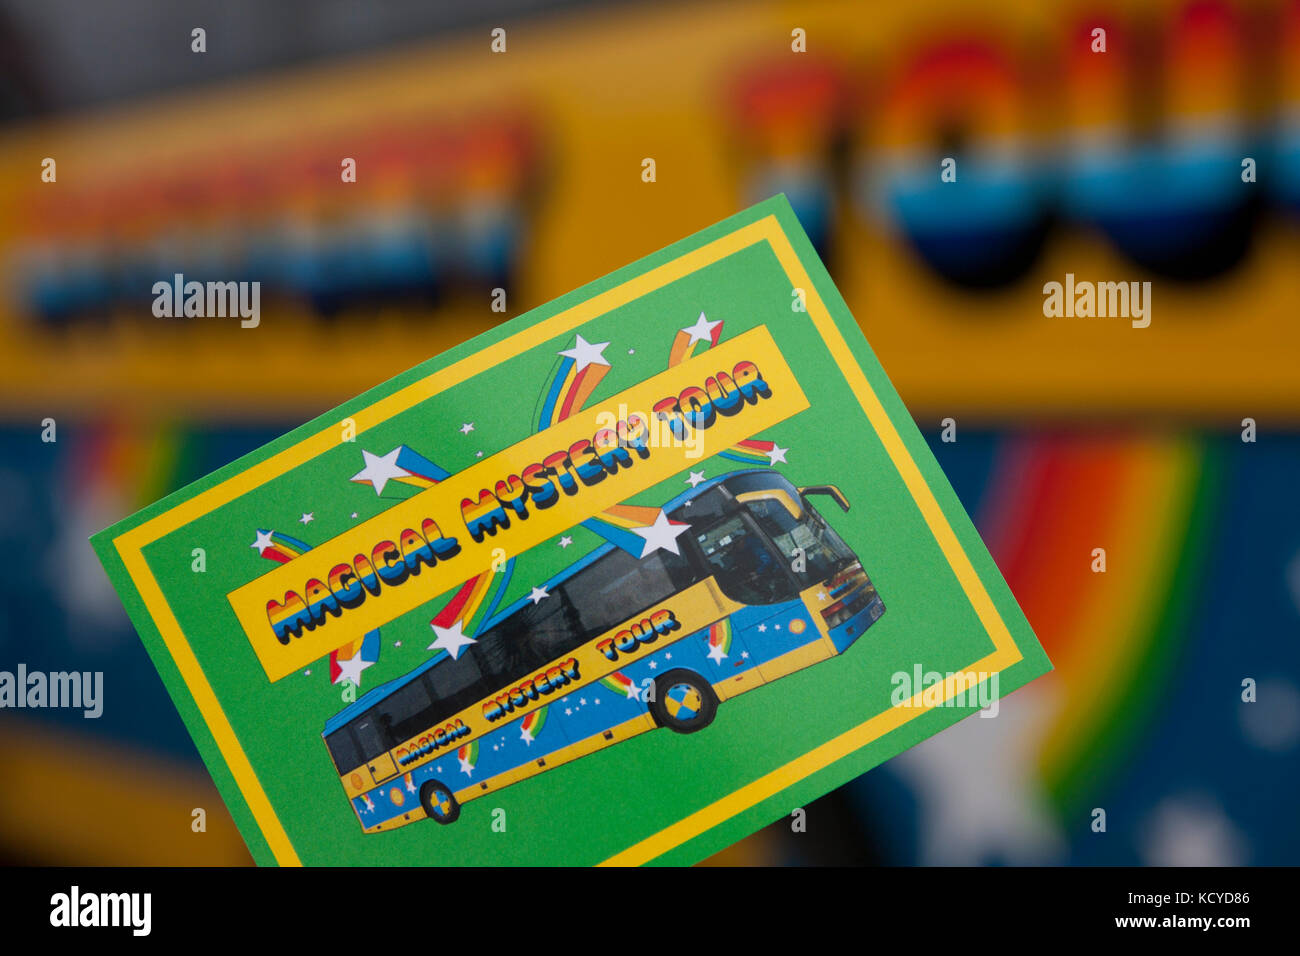 Magical Mystery Tour ticket, Albert Dock, Liverpool, Merseyside - Stock Image